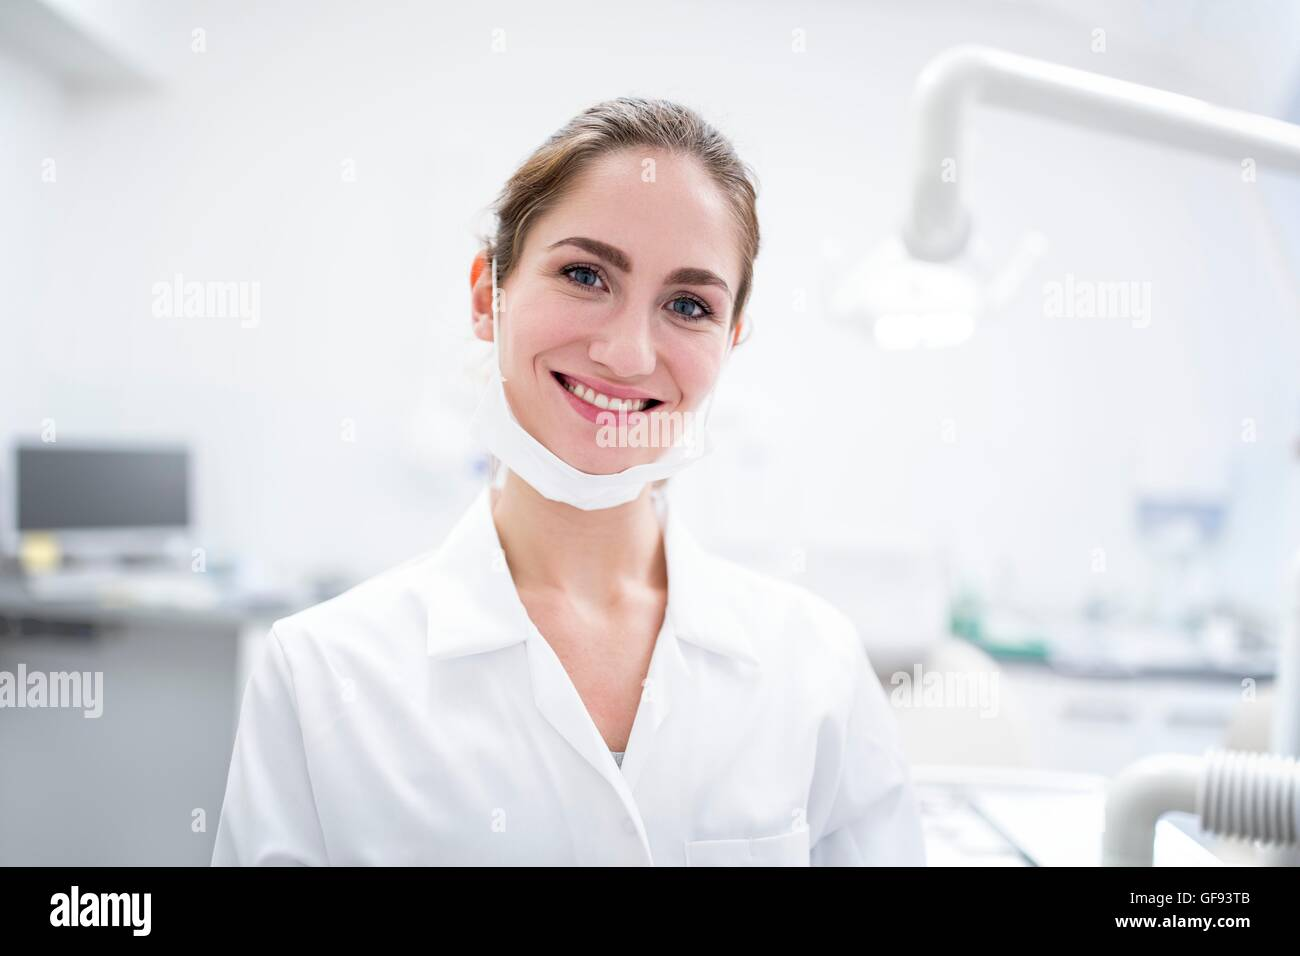 MODEL RELEASED. Close-up of young woman dentist, portrait. - Stock Image